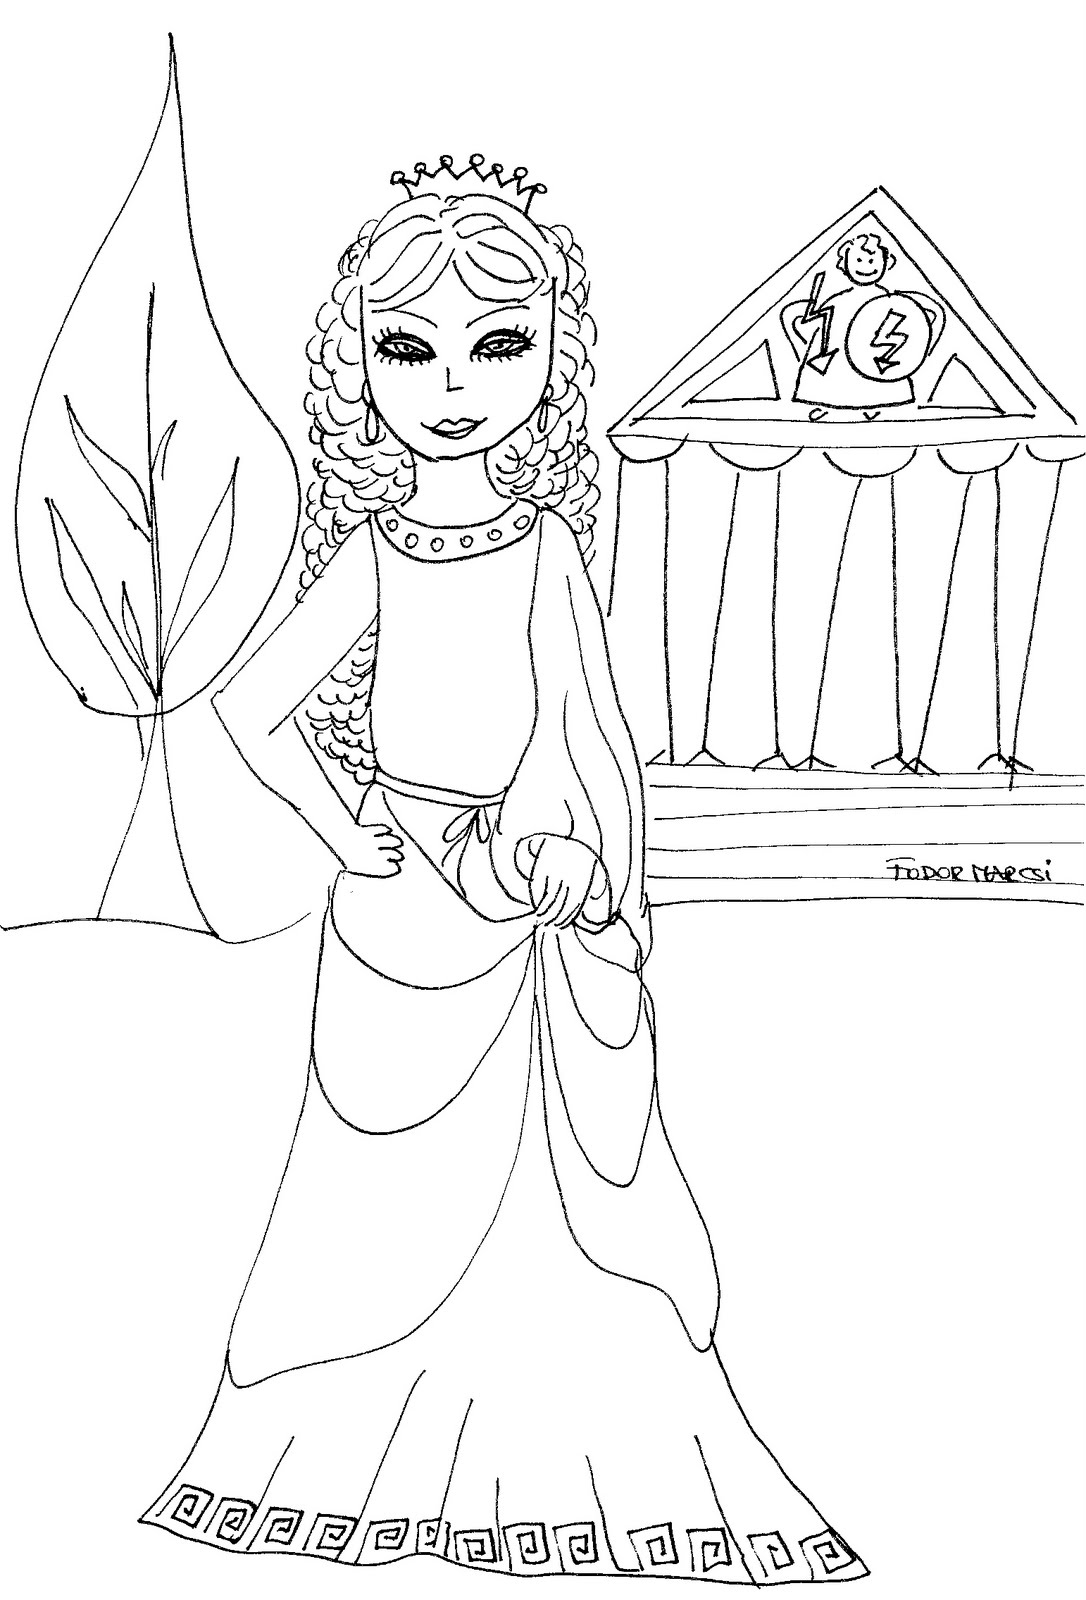 Rainbow magic coloring pages to print